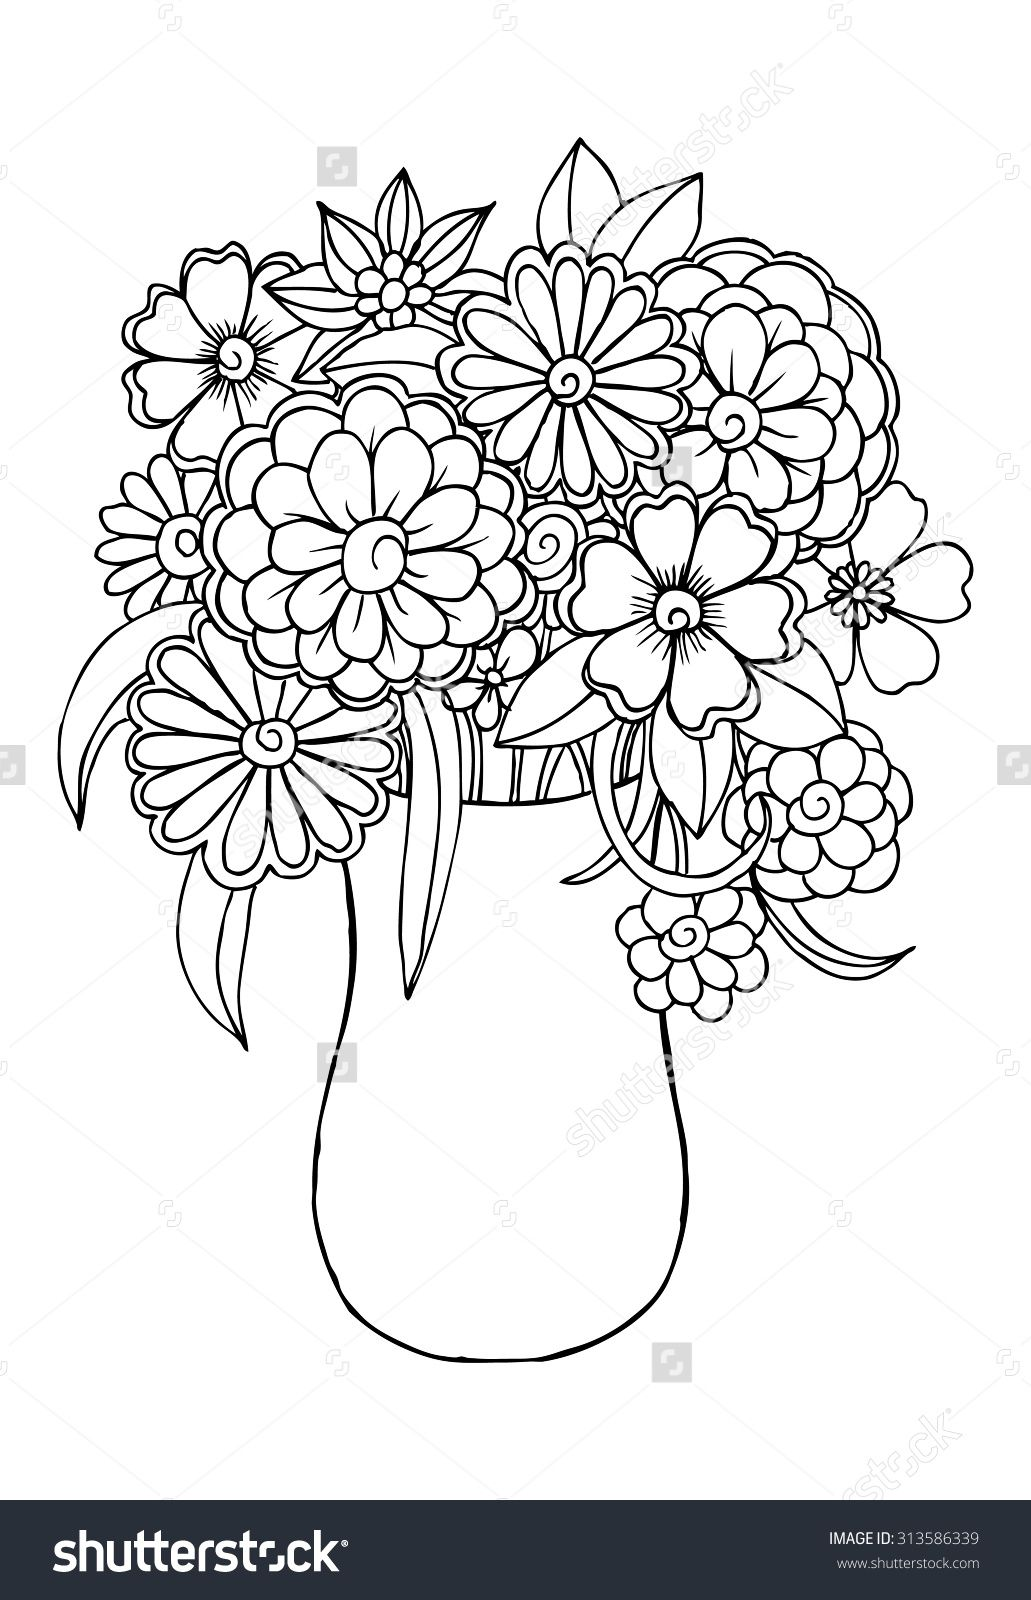 Vector Bouquet Of Flowers In A Vase Coloring Pages Pattern Coloring Pages Coloring Books